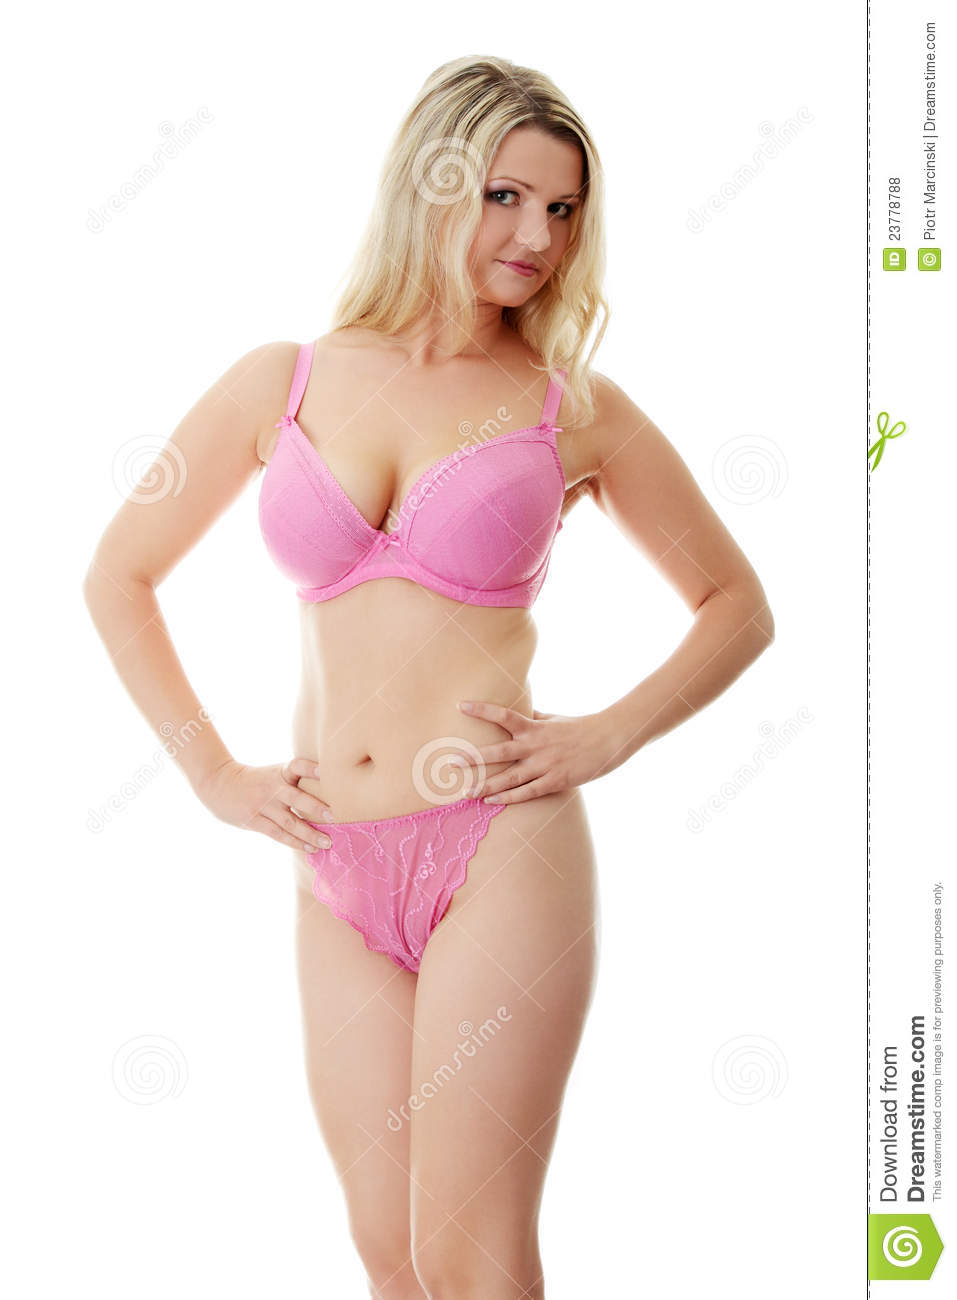 Caucasian Plus Size Woman In Underwear Royalty Free Stock Photos ...